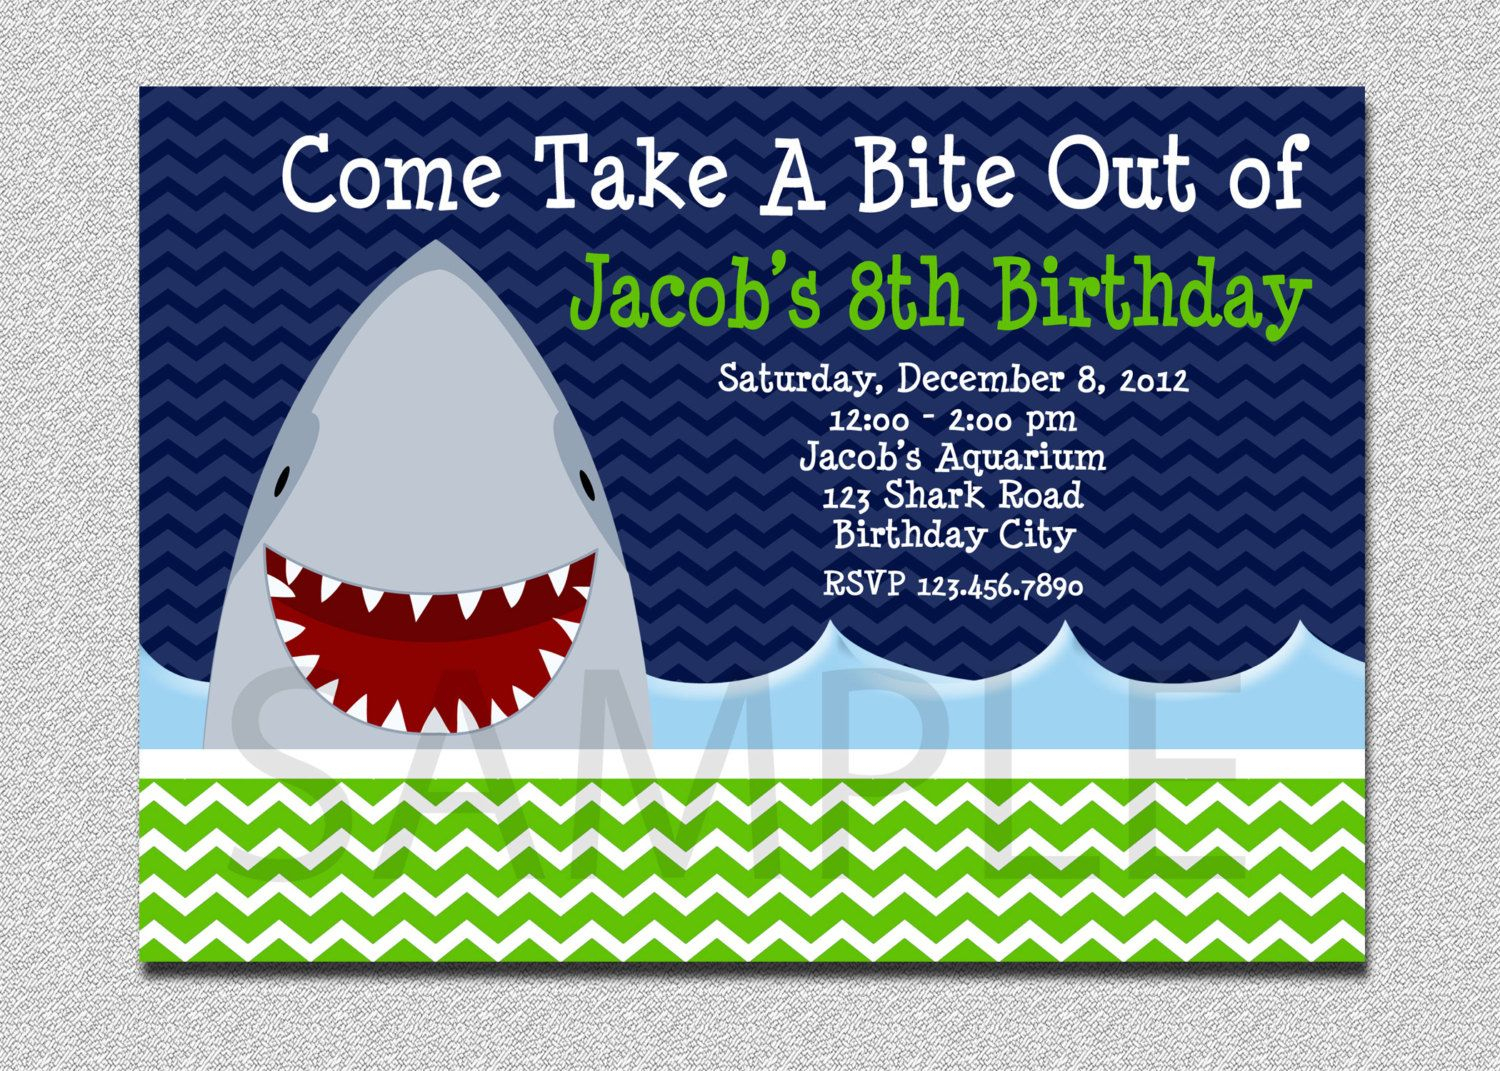 Pinanggunstore On Invitationswww.egreeting-Ecards - Shark Invitations Free Printable